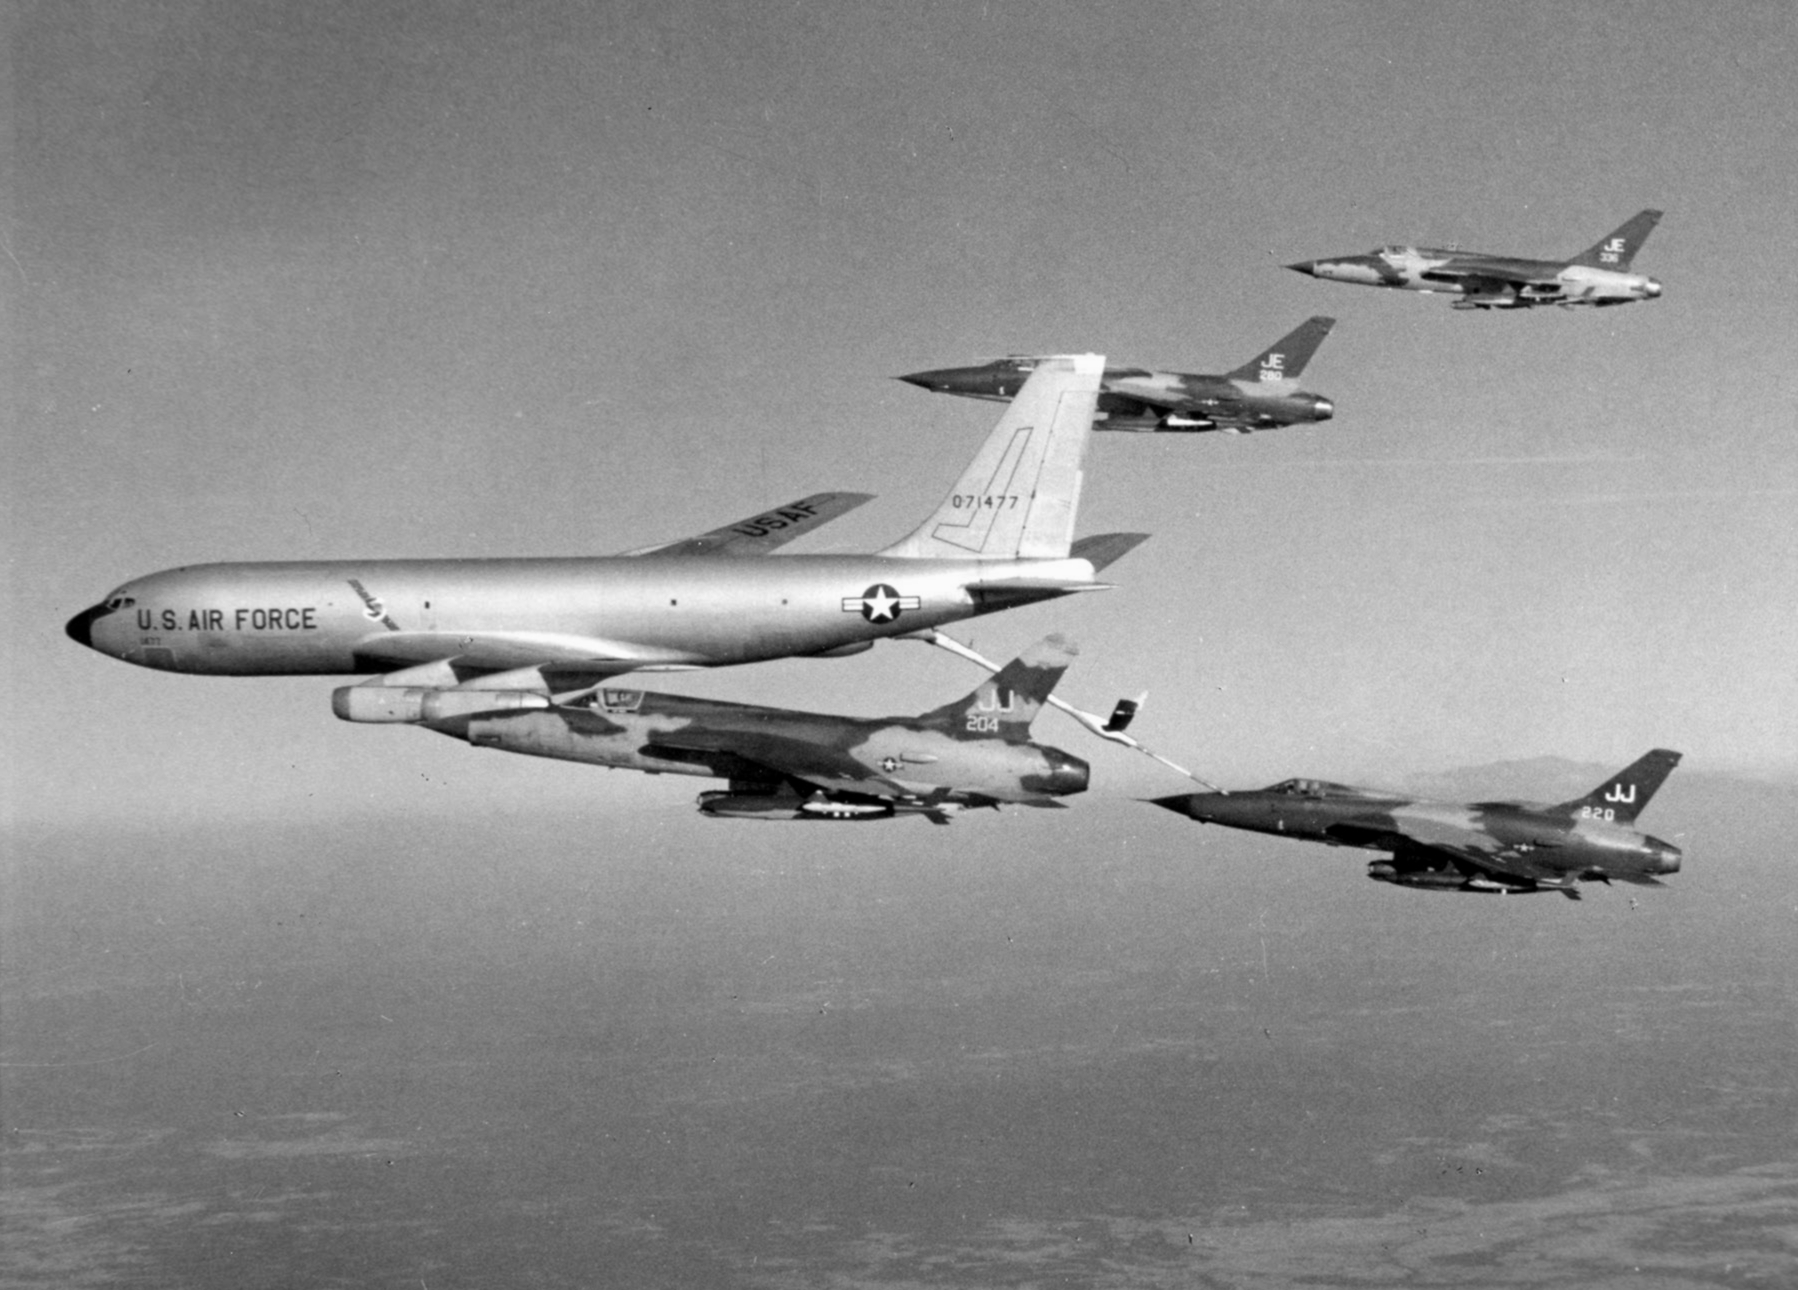 National Air Force Museum >> File:KC-135A refuels 388th TFW F-105Ds c1967.jpg - Wikimedia Commons